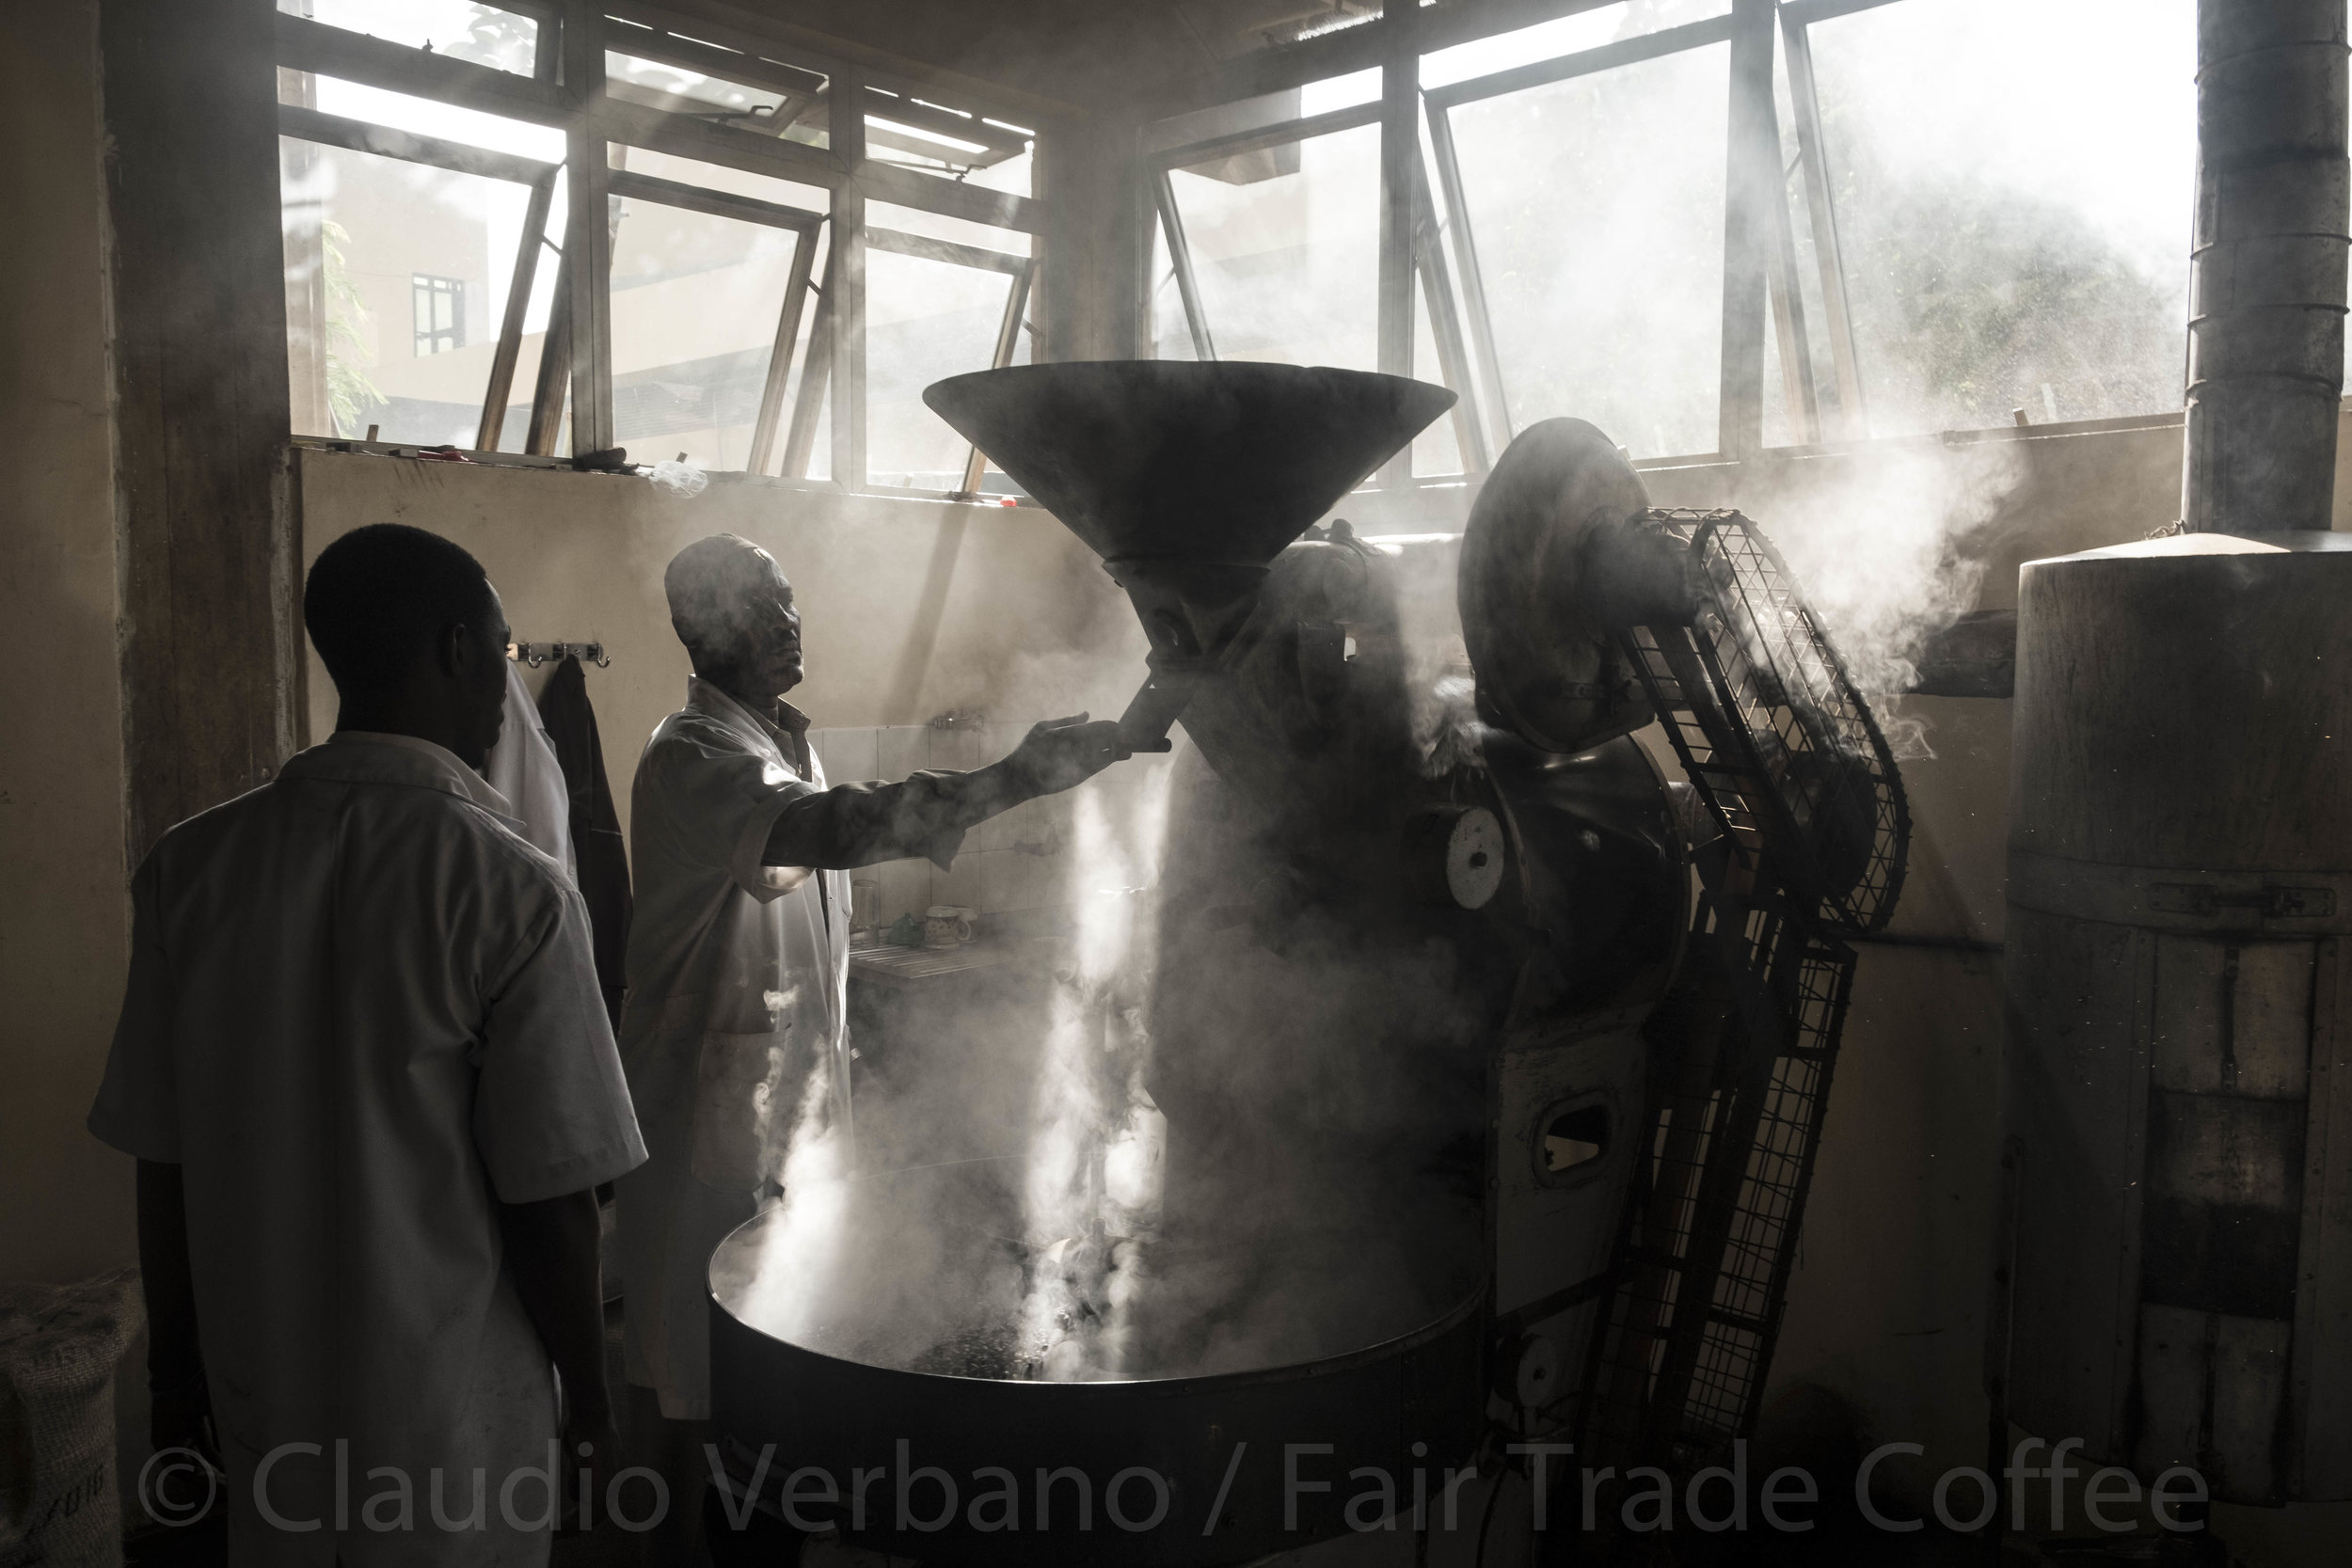 Fair Trade Coffee by Claudio Verbano 19.jpg